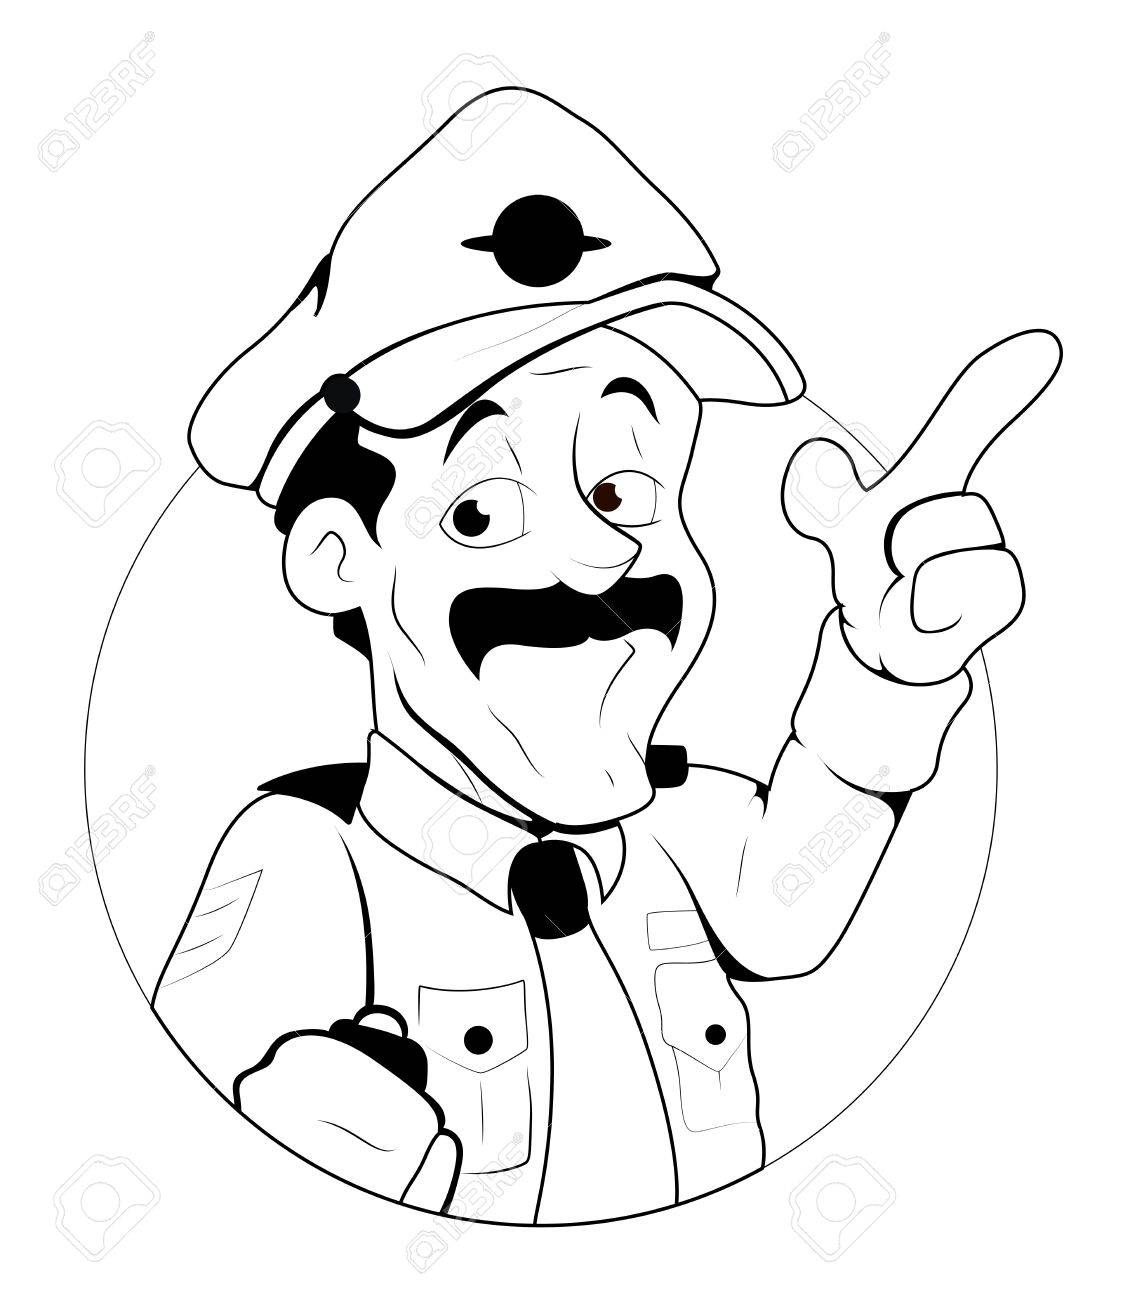 Traffic Police Officer Illustration Royalty Free Cliparts, Vectors ...